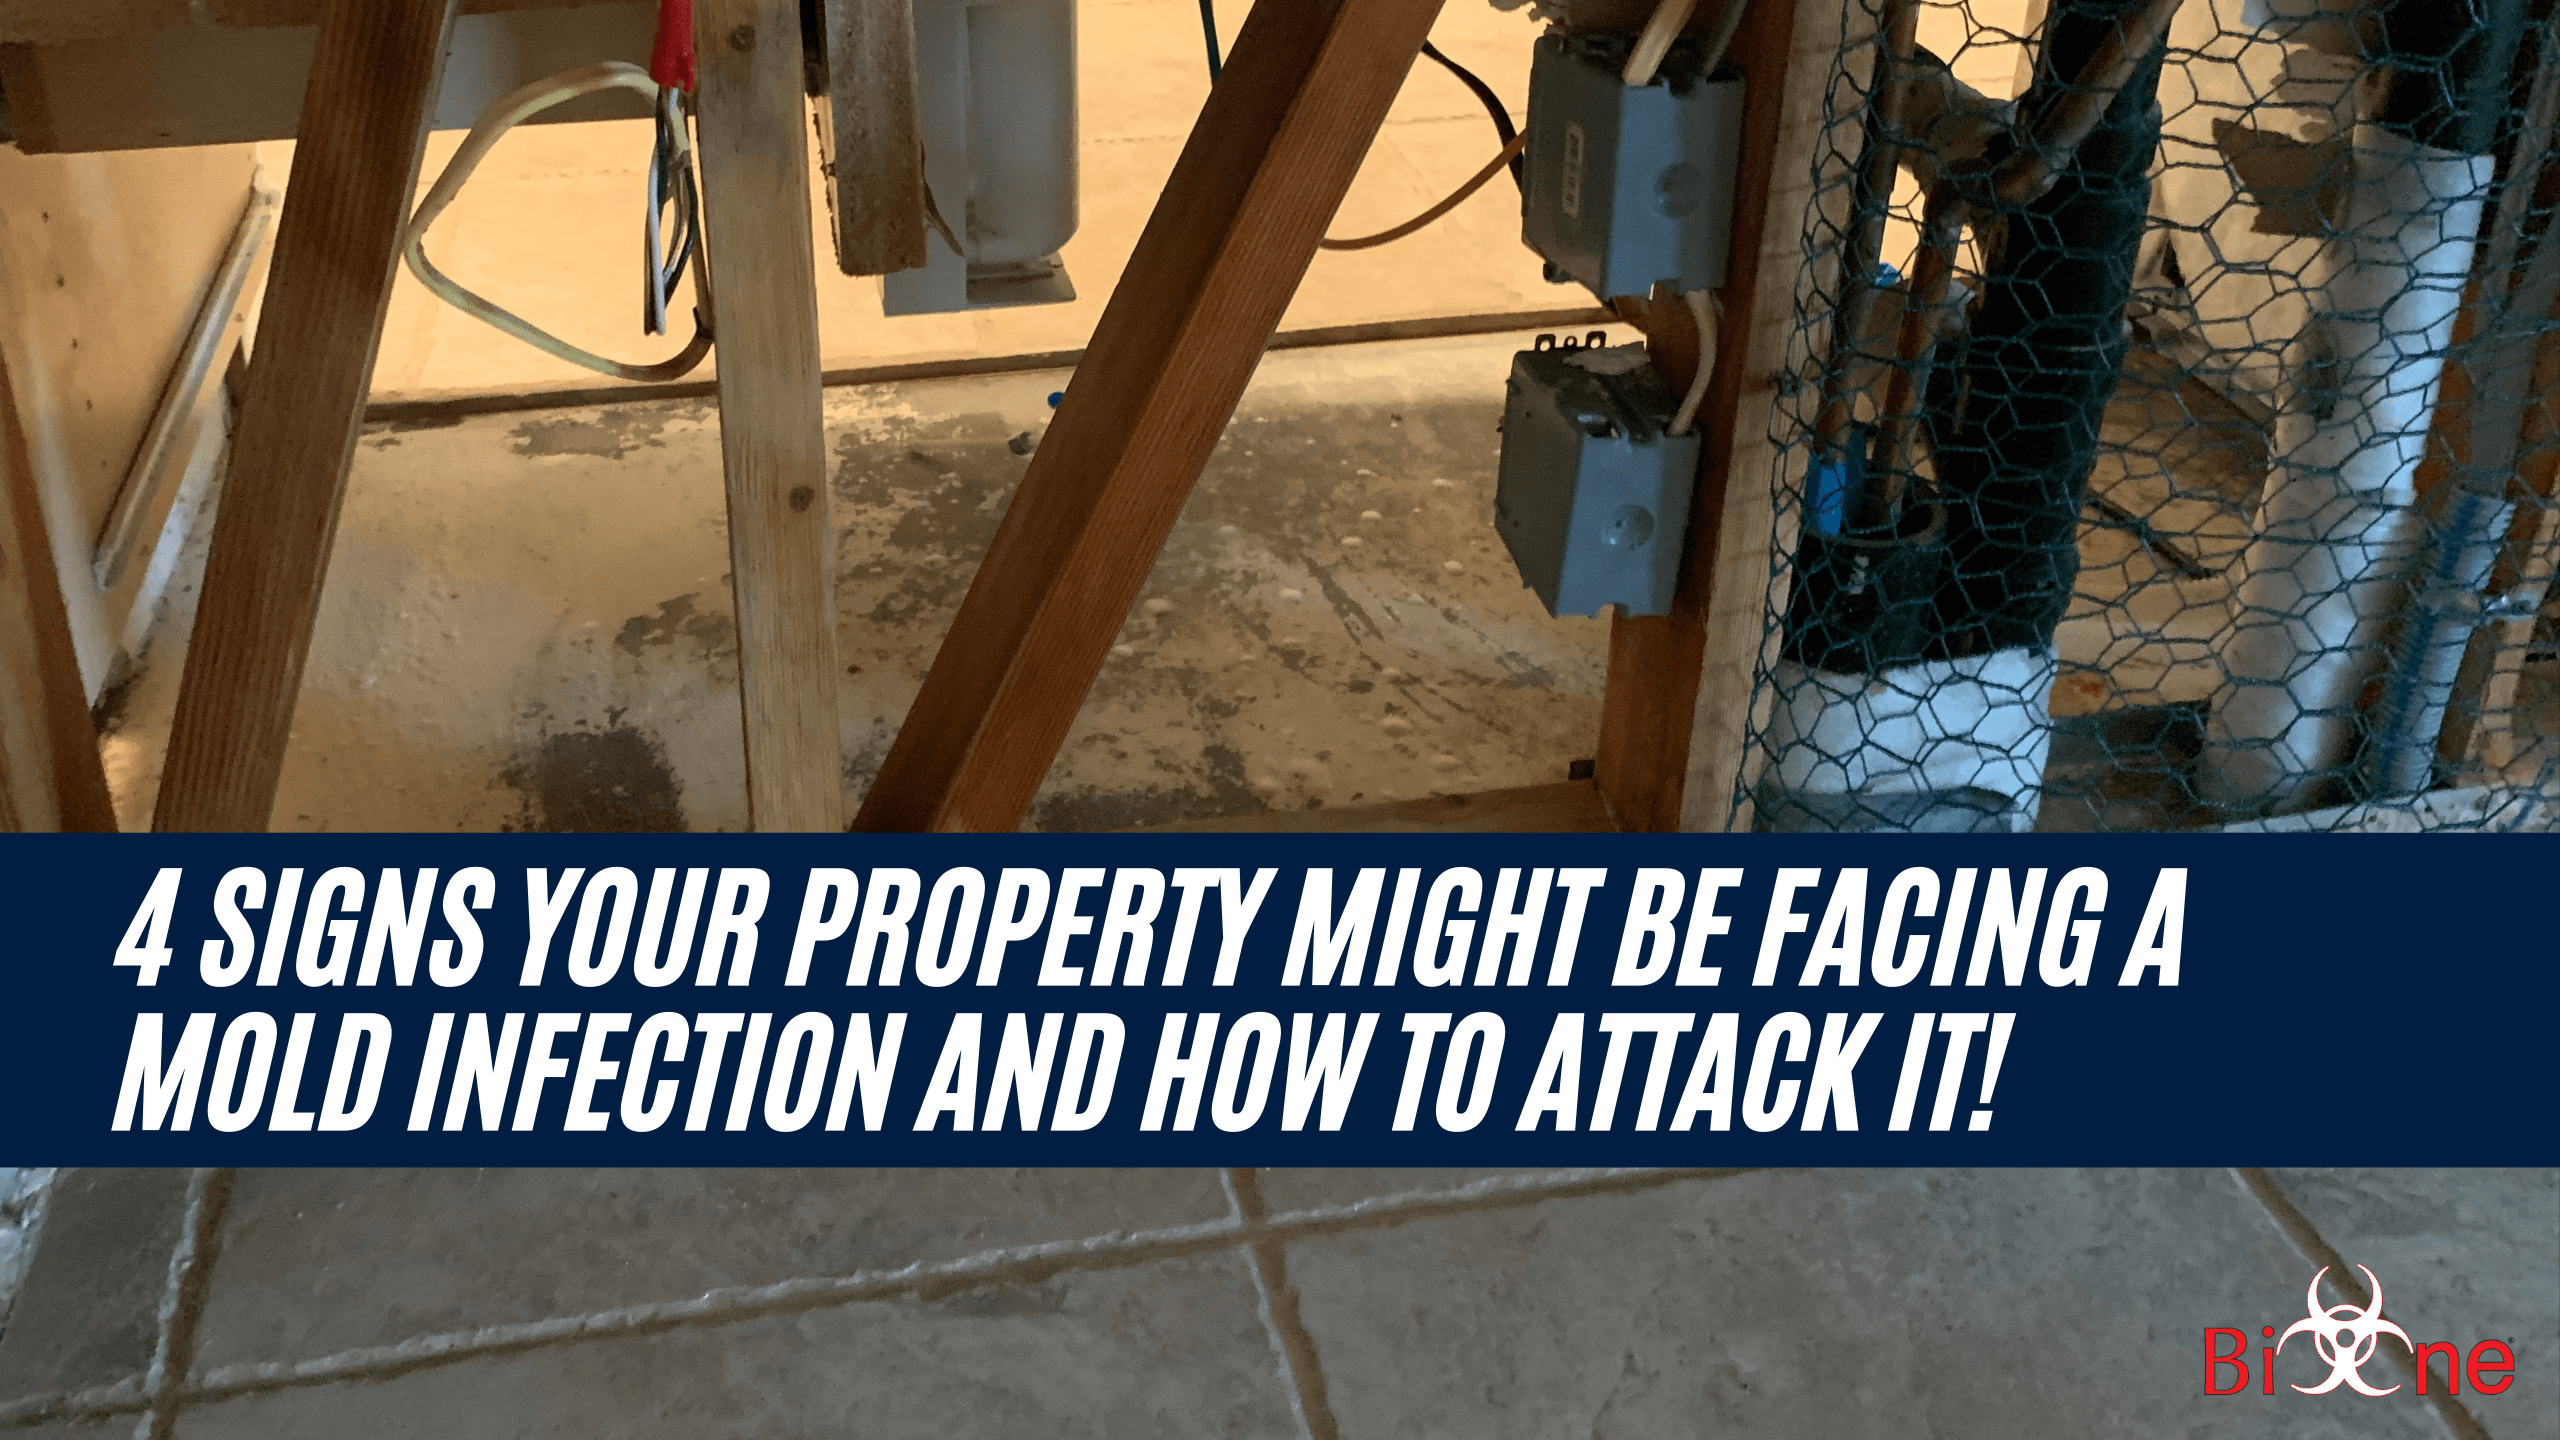 4 Signs your Property might be Facing a Mold Infection and How to attack it!